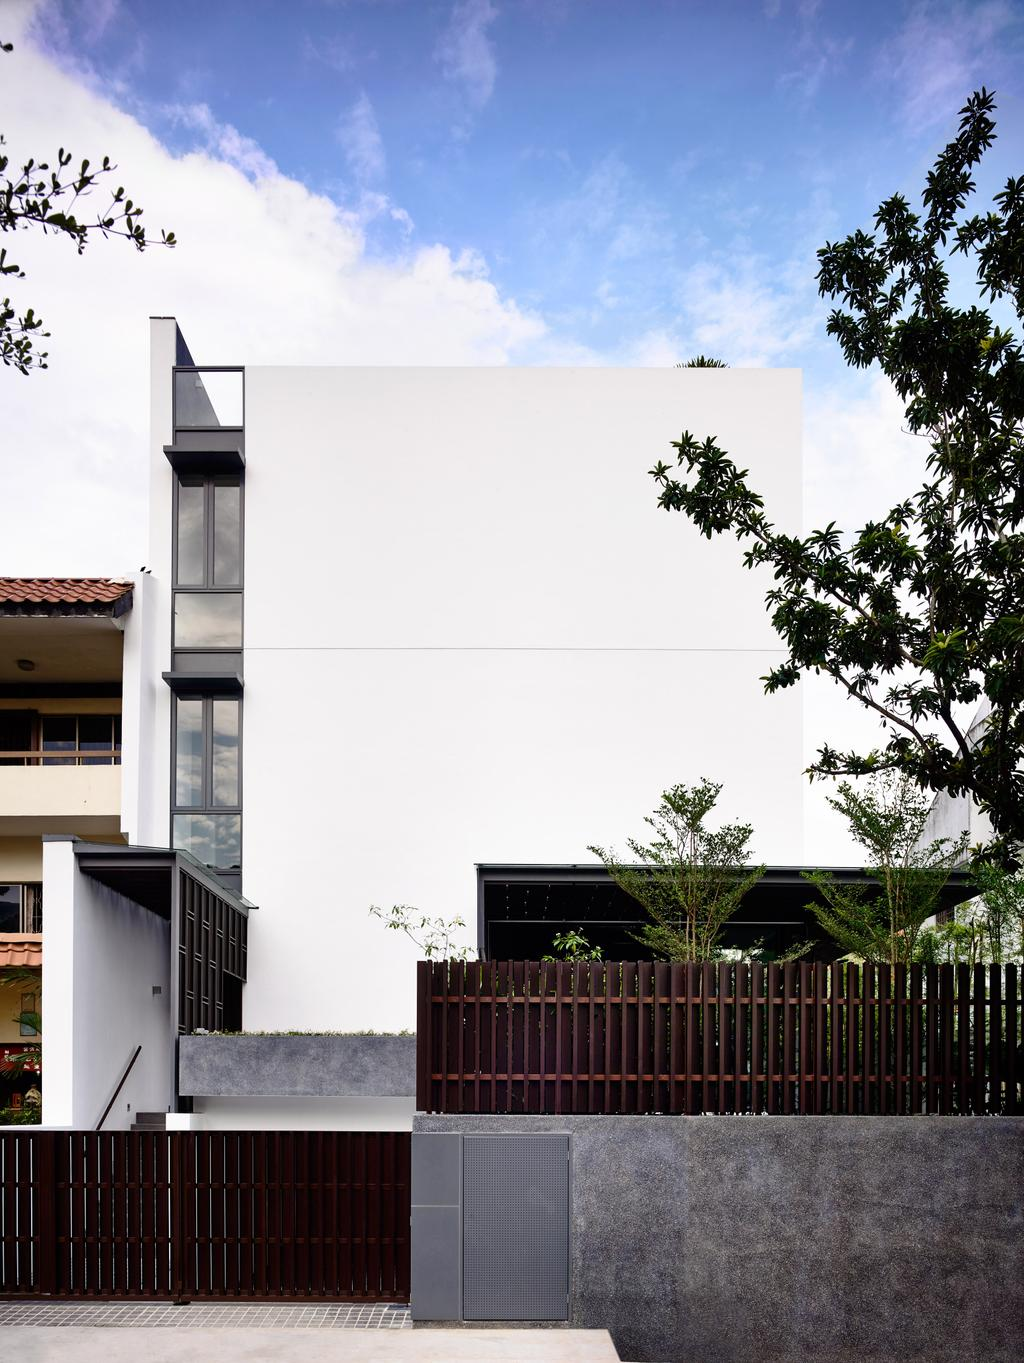 Contemporary, Landed, Greenbank Park, Architect, HYLA Architects, Roof, Tile Roof, Balcony, Arecaceae, Flora, Palm Tree, Plant, Tree